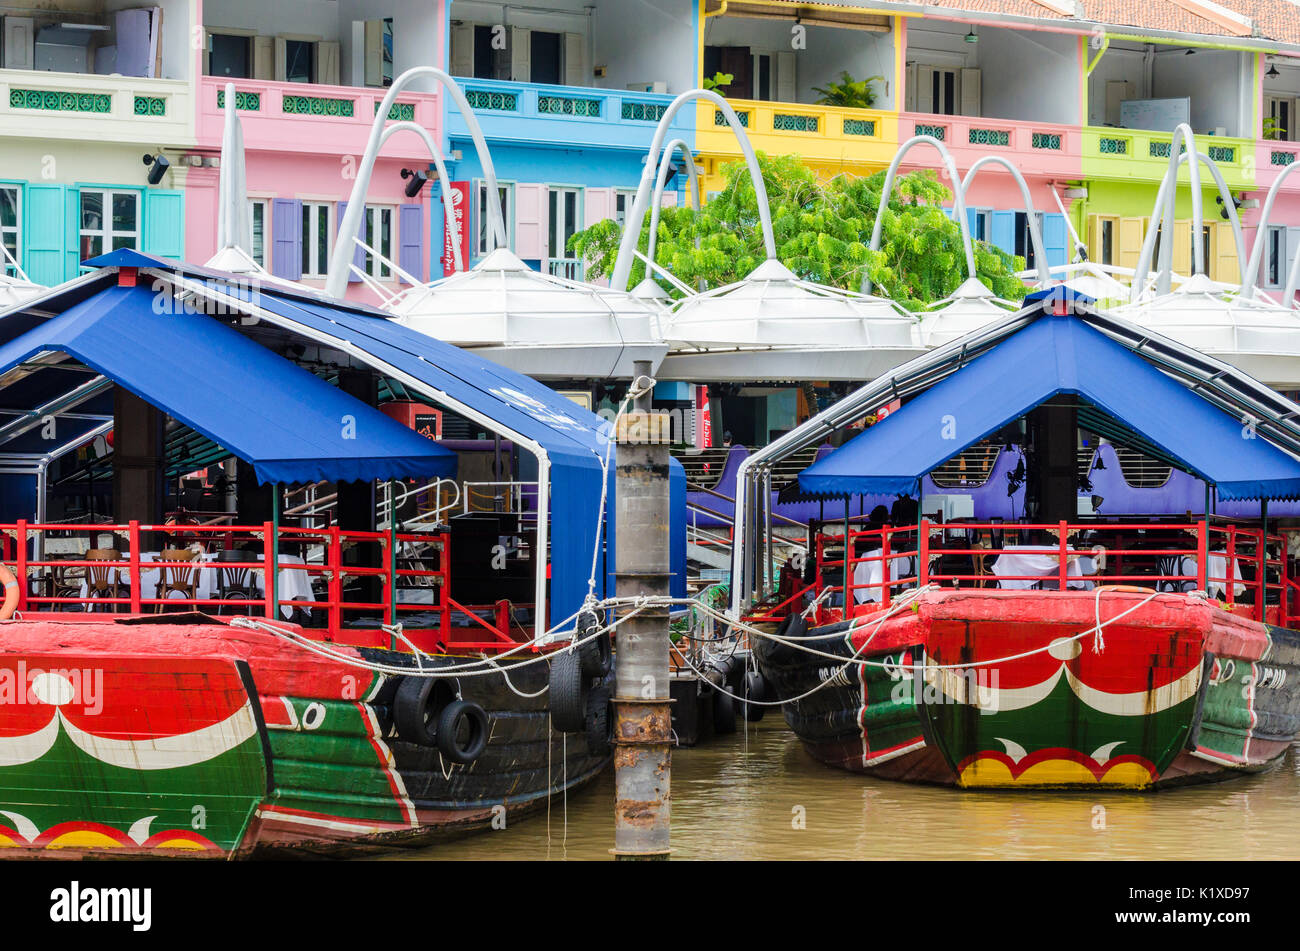 Colourful restaurant boats anchored at Clarke Quay, Singapore - Stock Image